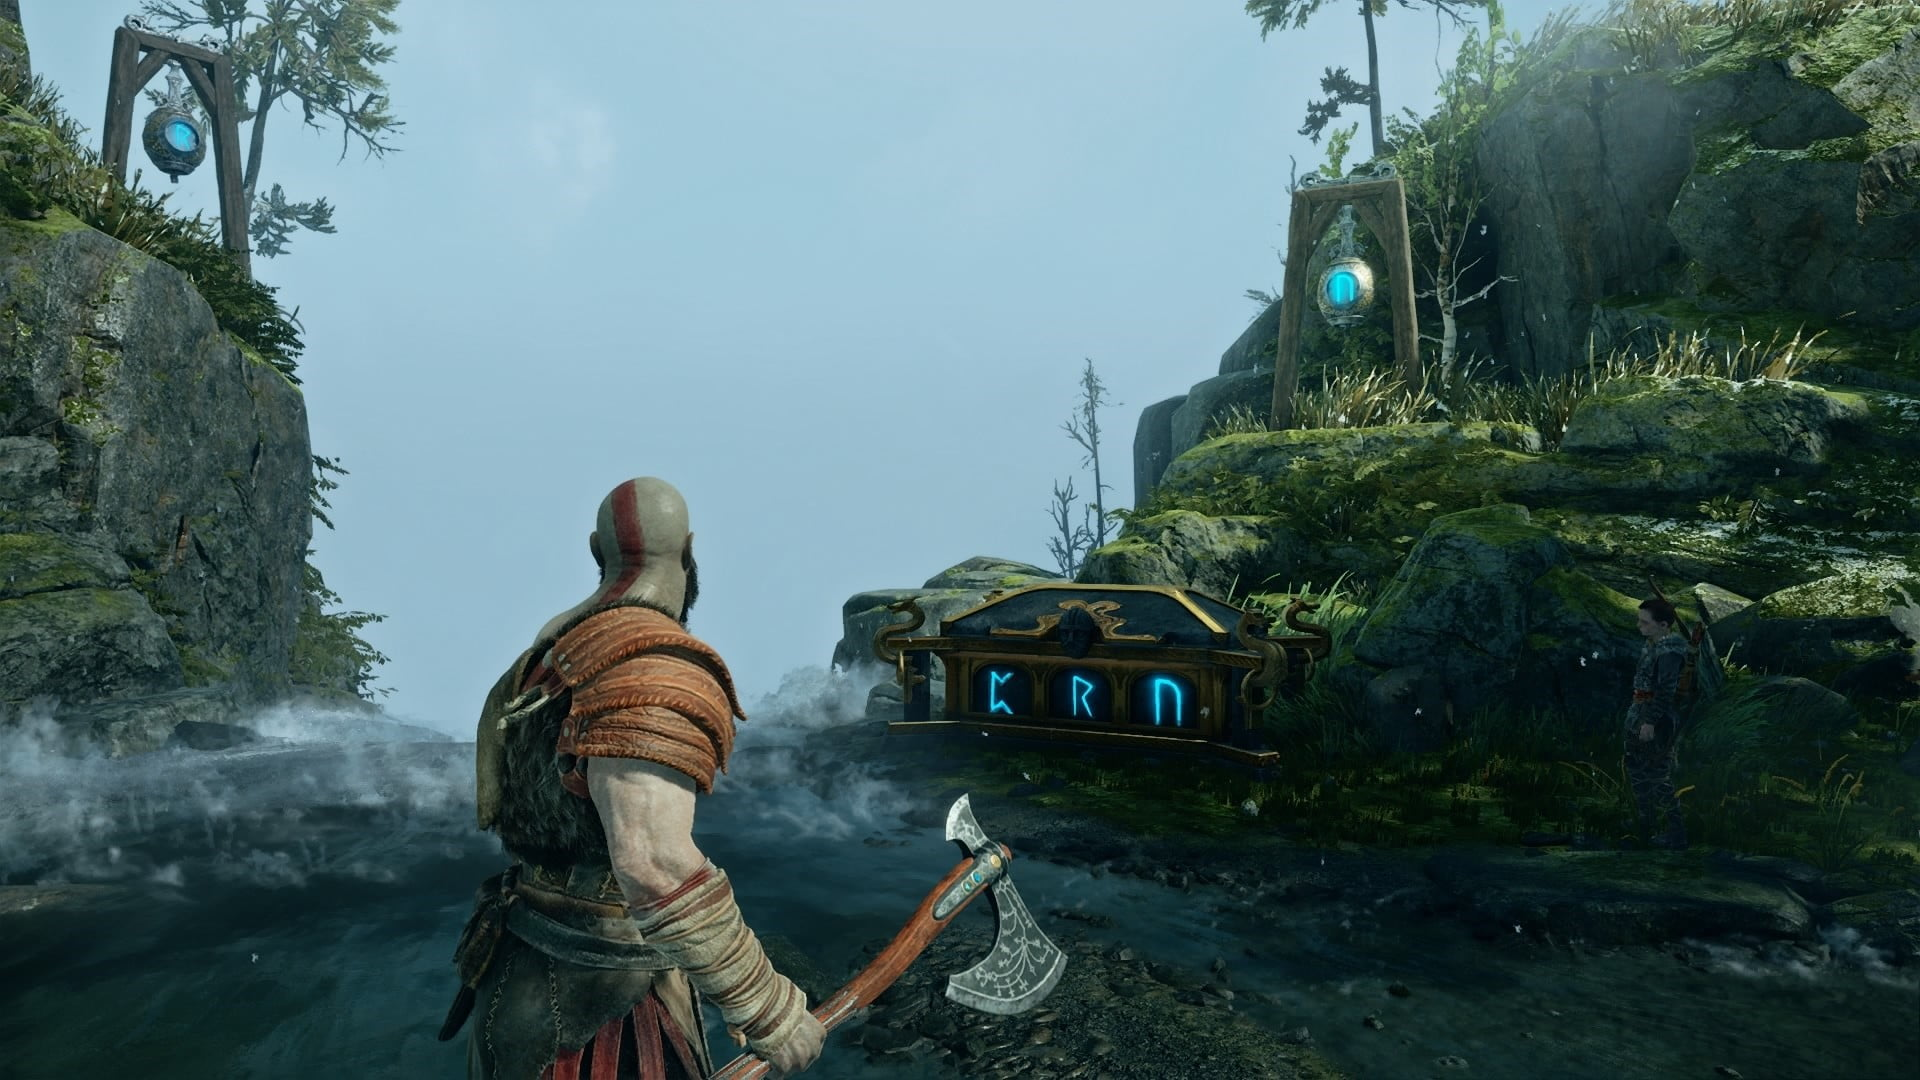 God Of War Nornir Treasure Chests Collectibles Guide Digital Trends